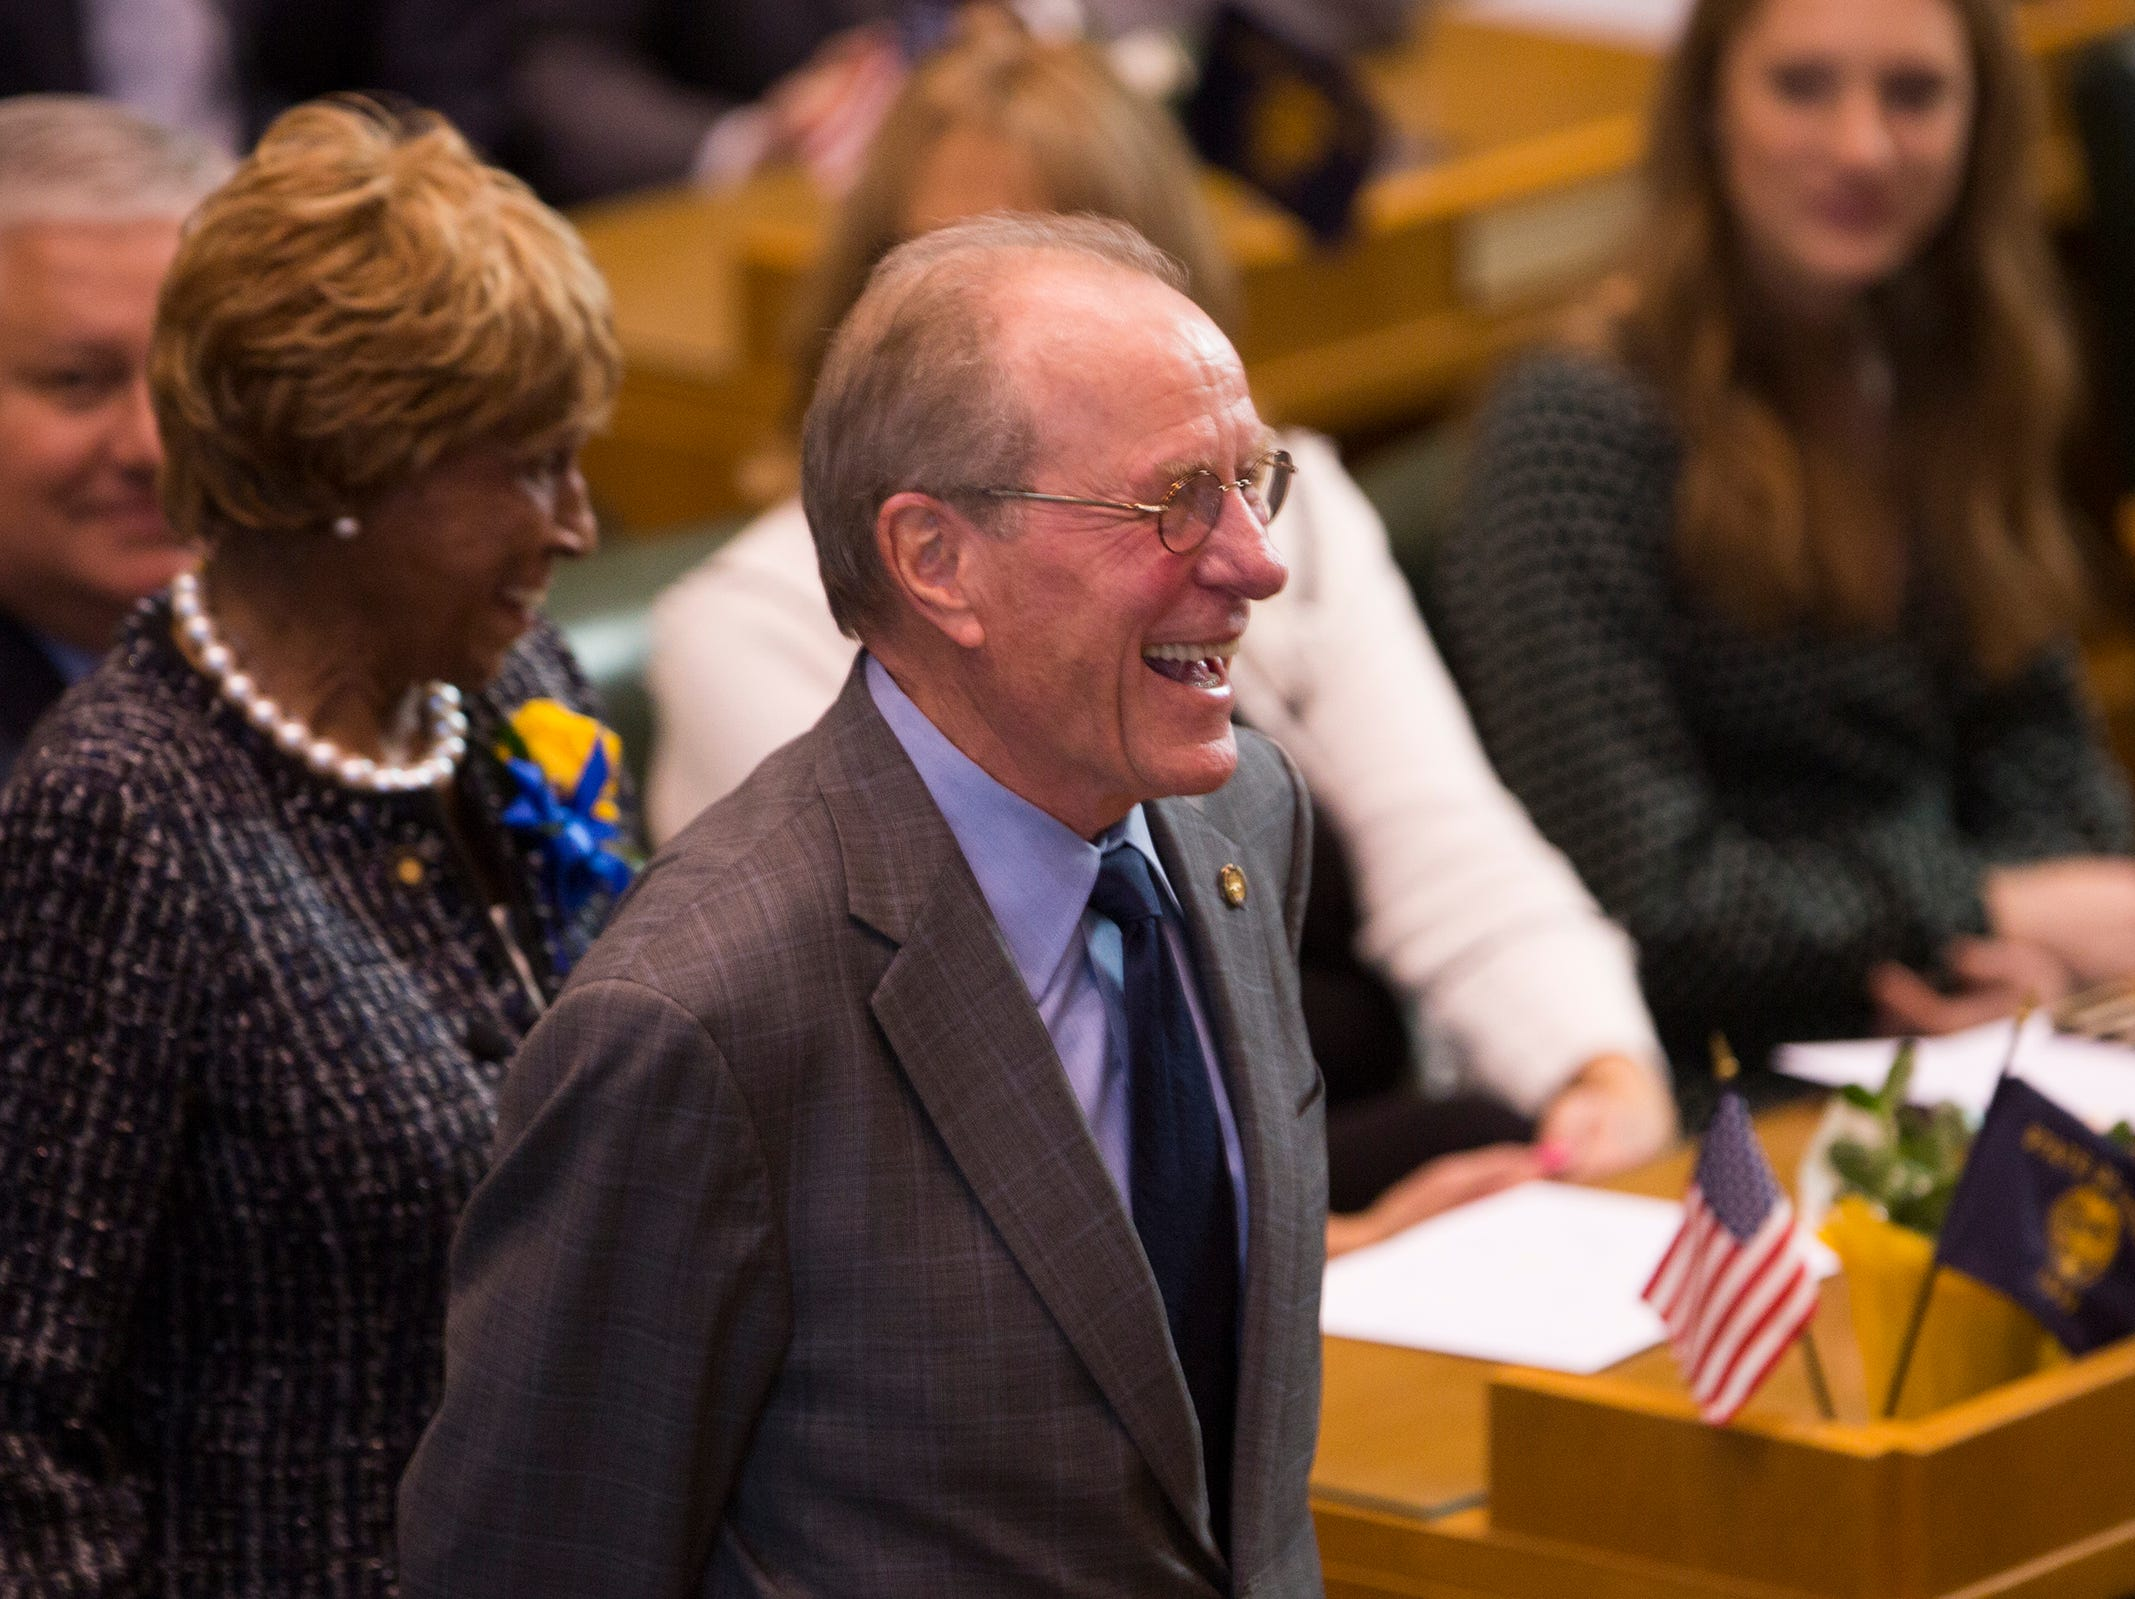 Former Governor Ted Kulongoski is introduced before Kate Brown addresses the state legislature at her inauguration at the Oregon State Capitol on Jan. 14, 2019.